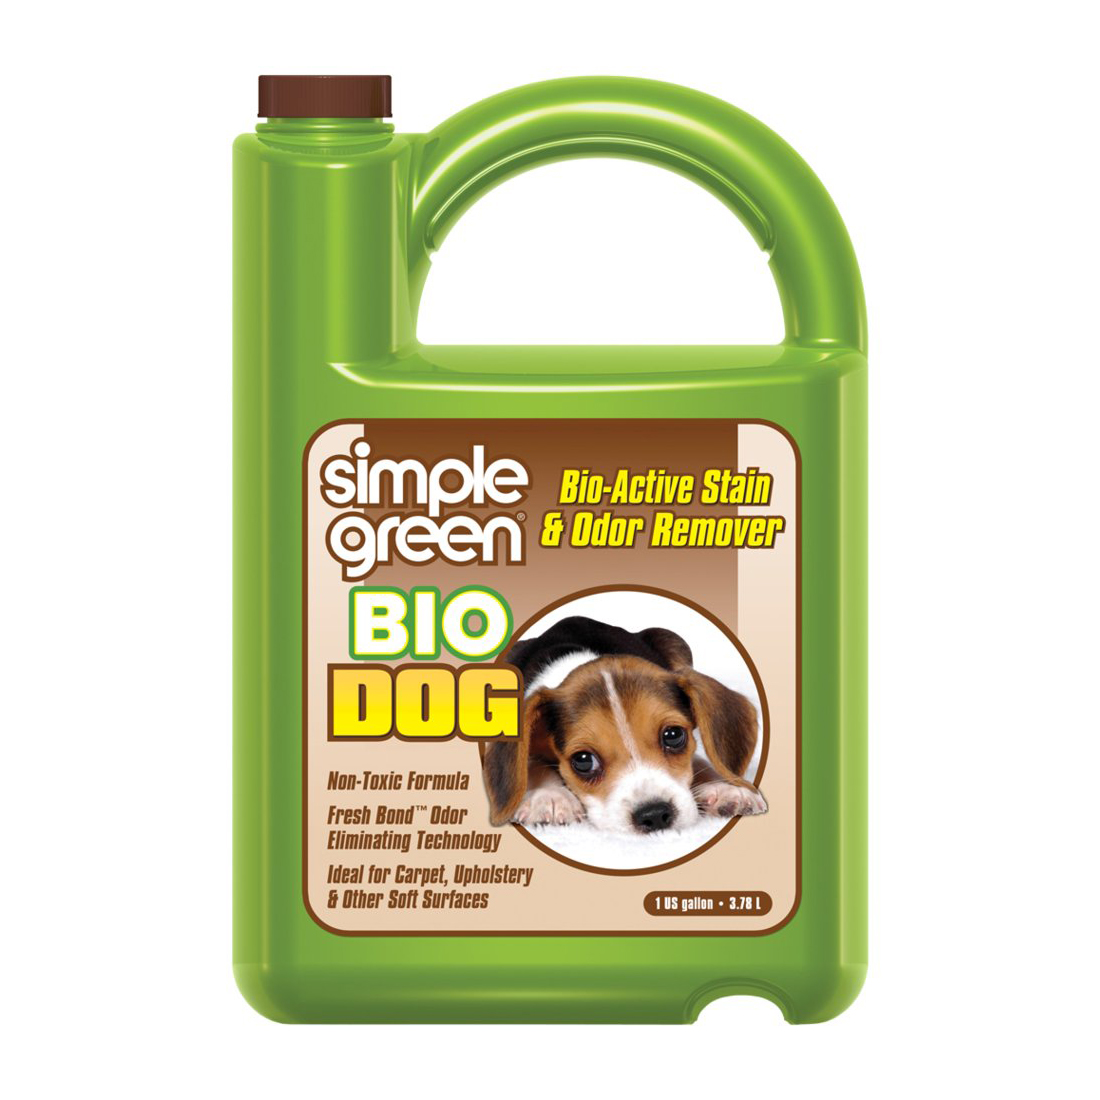 Simple Green Bio Dog Pet Stain and Odor Remover at Walmart